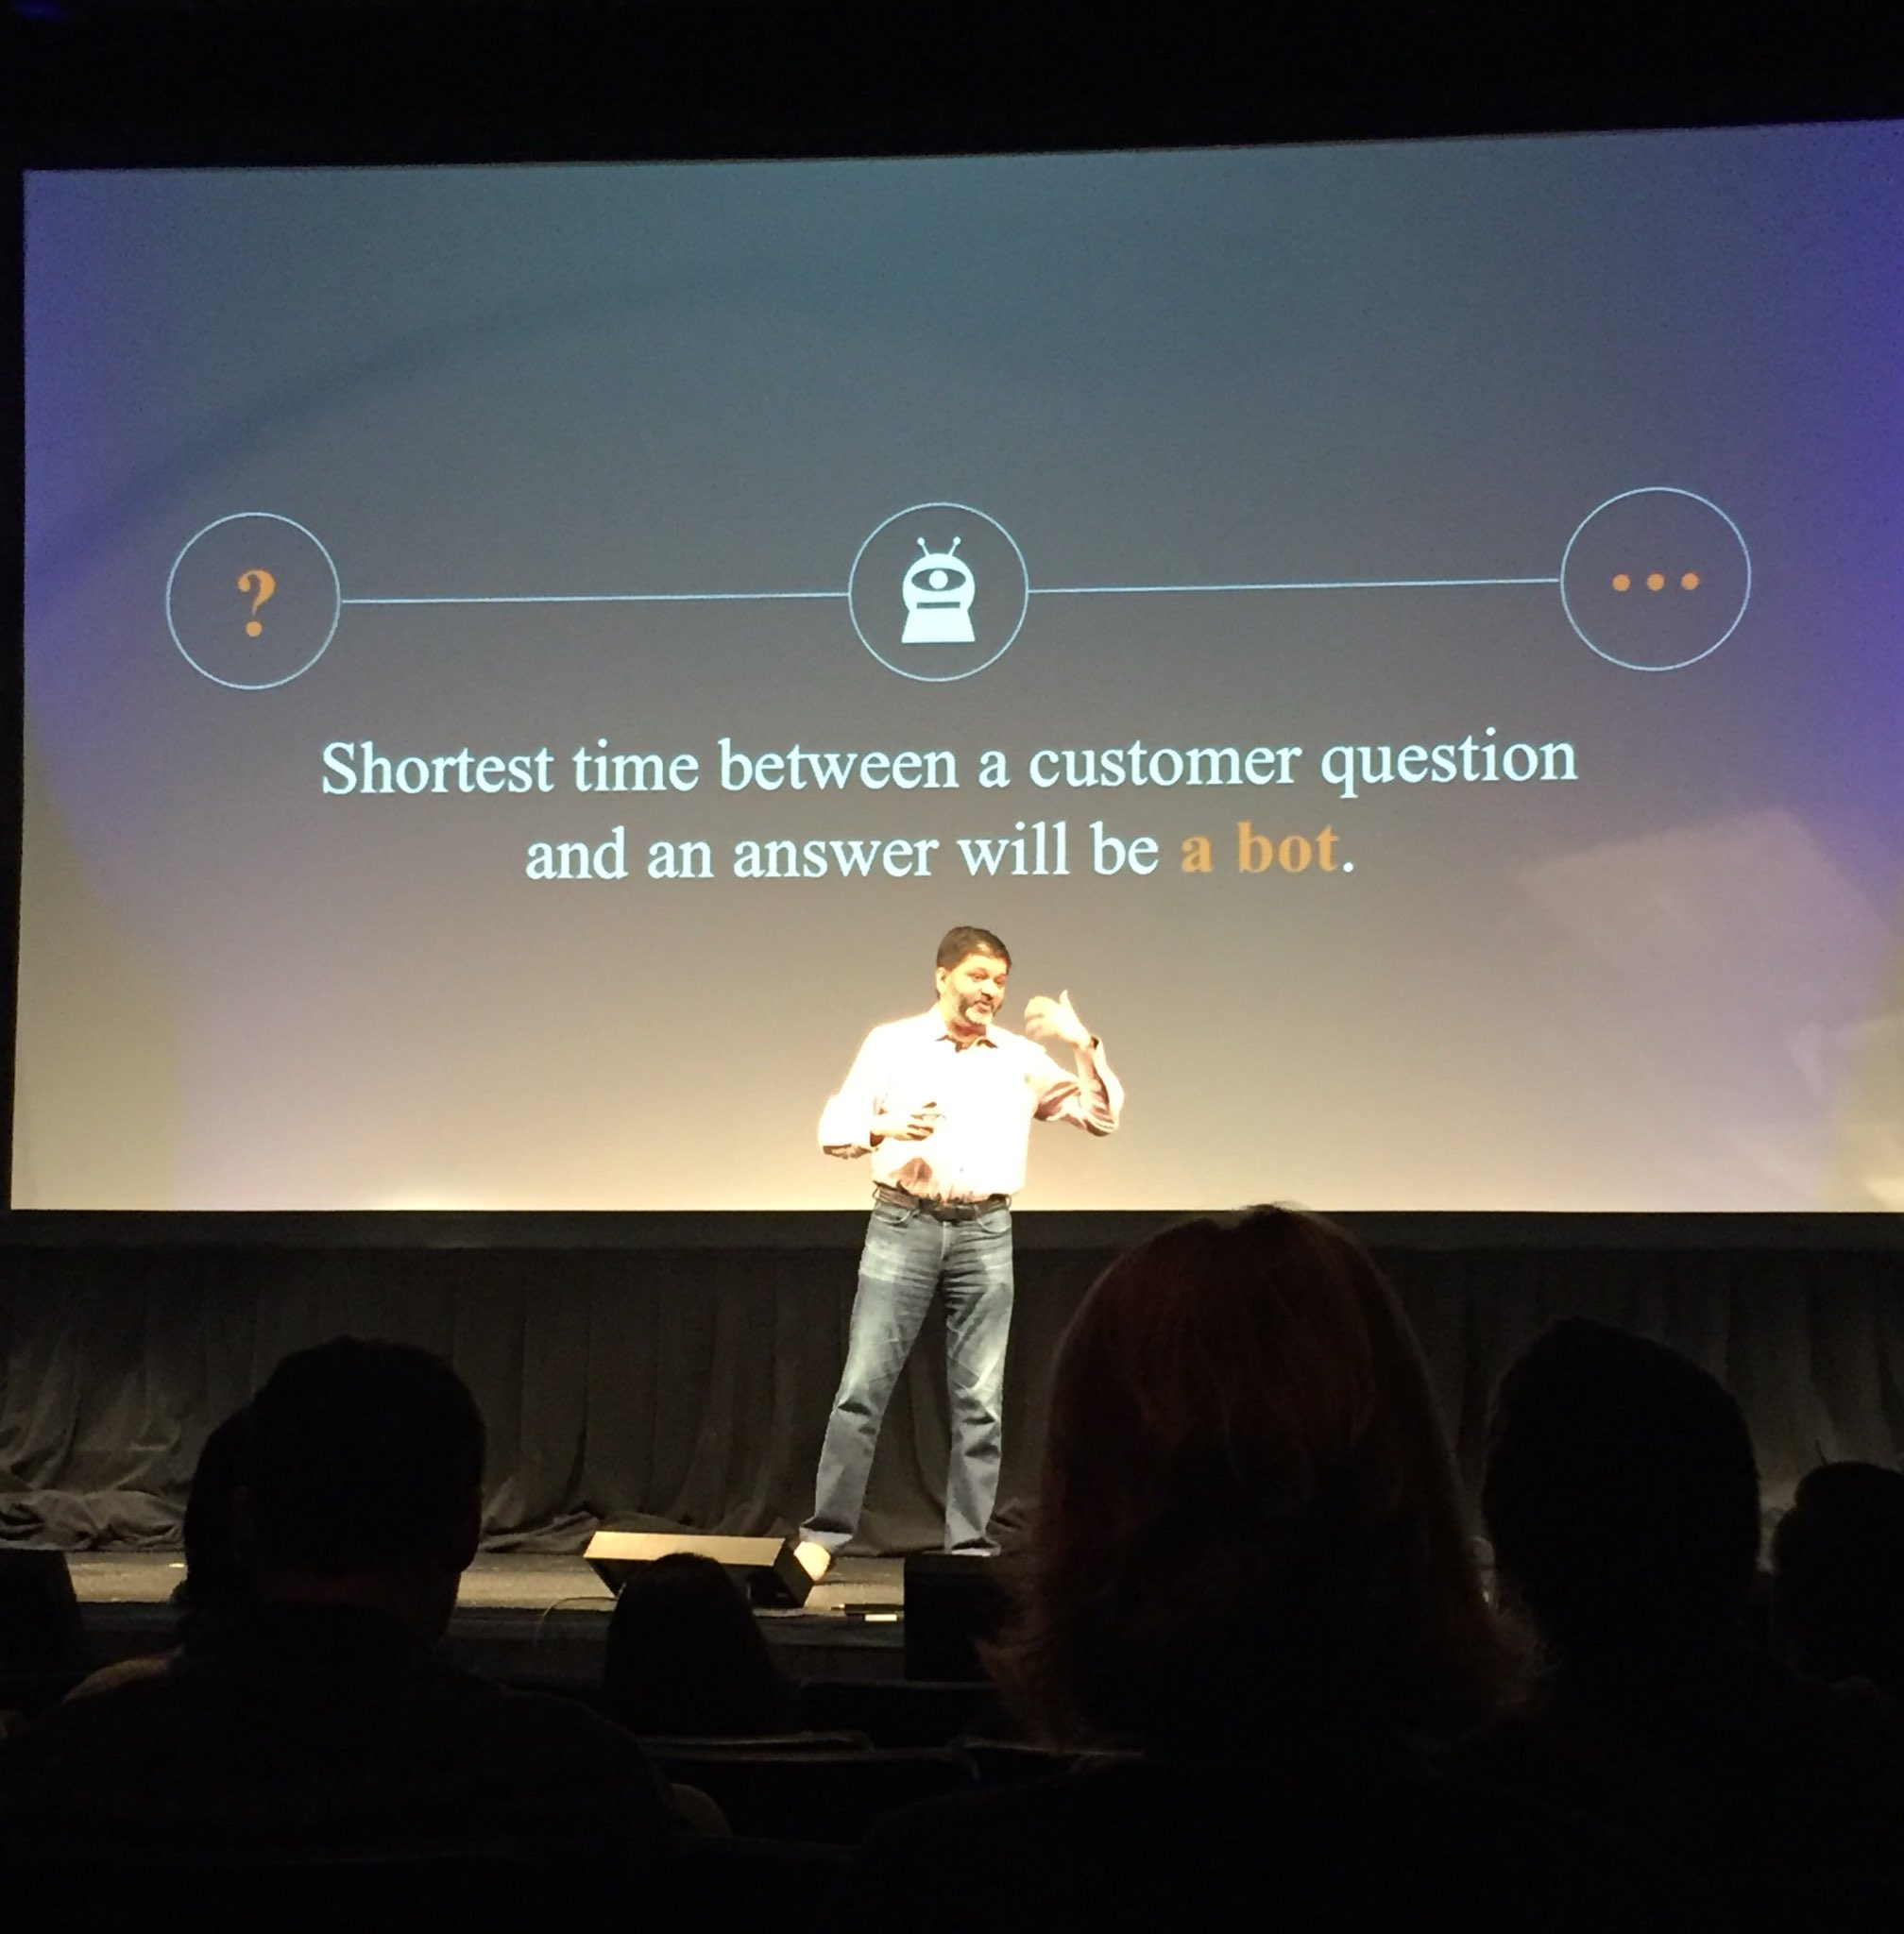 A.I.'s next big use will be customer service. Building customer-first marketers isn't far in our future. #C3NY #SEO @dharmesh https://t.co/qOqPH435Pu